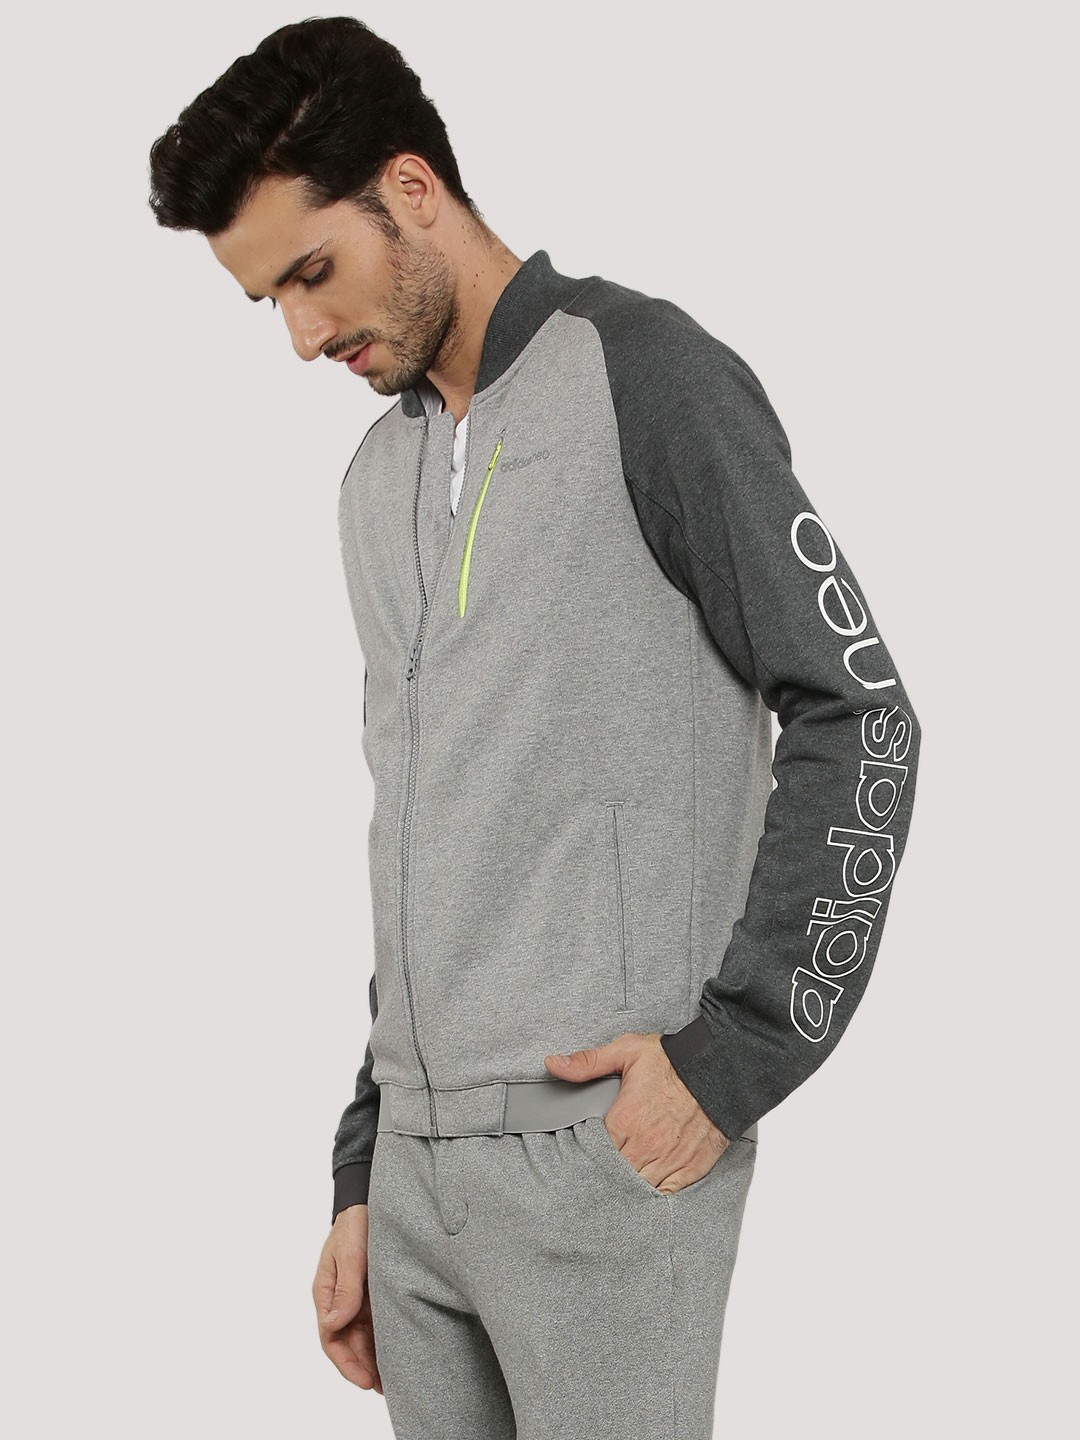 buy adidas neo jacket with zipper pocket and sleeves logo. Black Bedroom Furniture Sets. Home Design Ideas